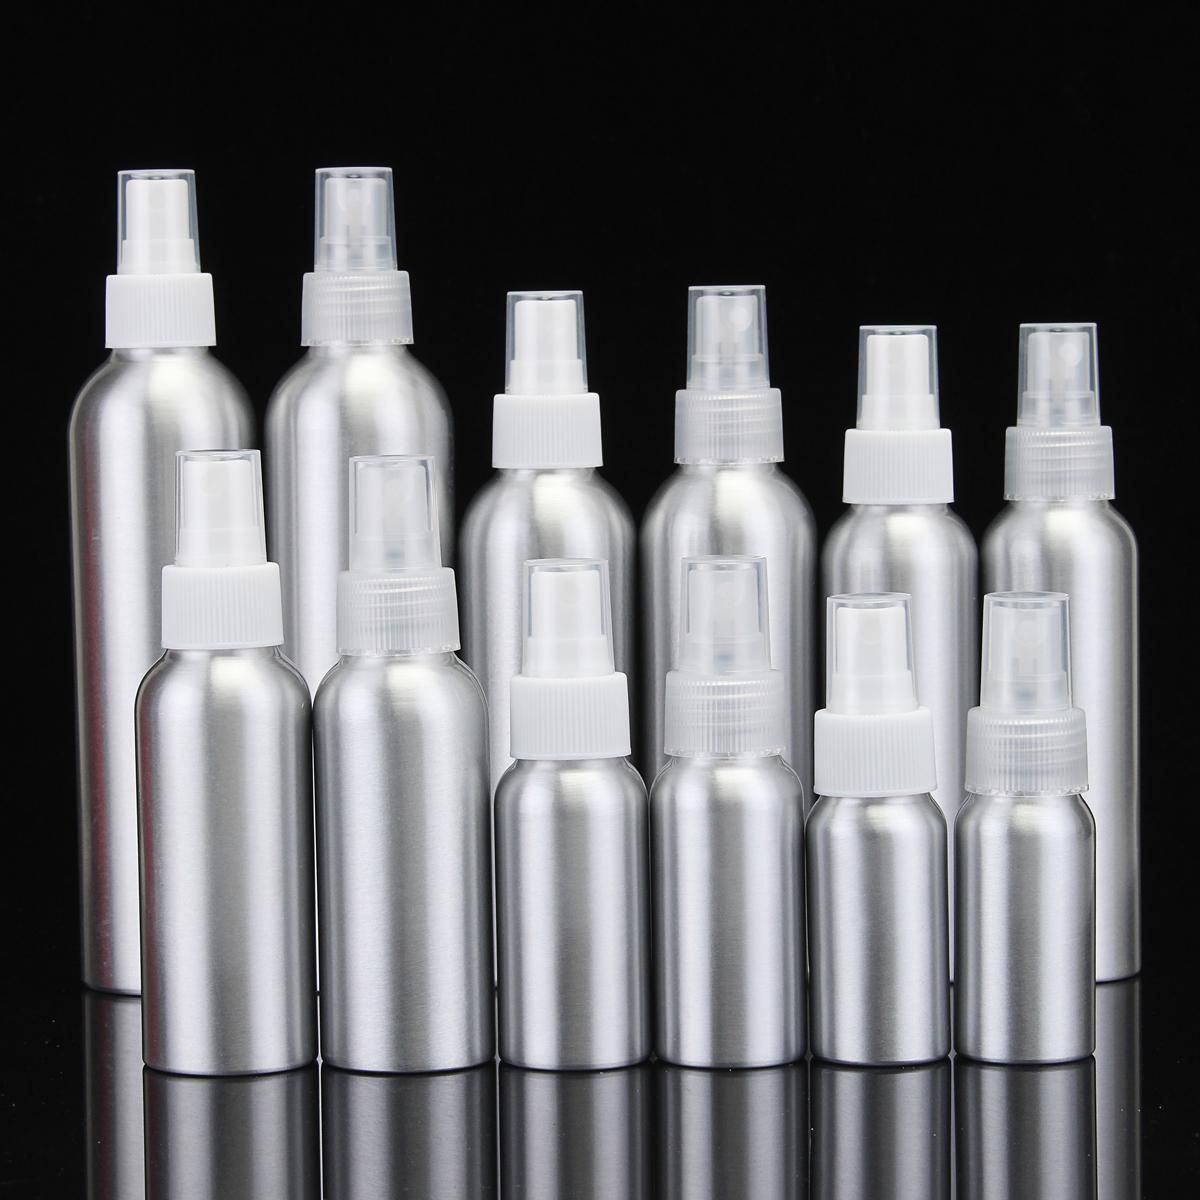 Empty Aluminum Metal Bottle With Transparent/White Fine Mist Spray